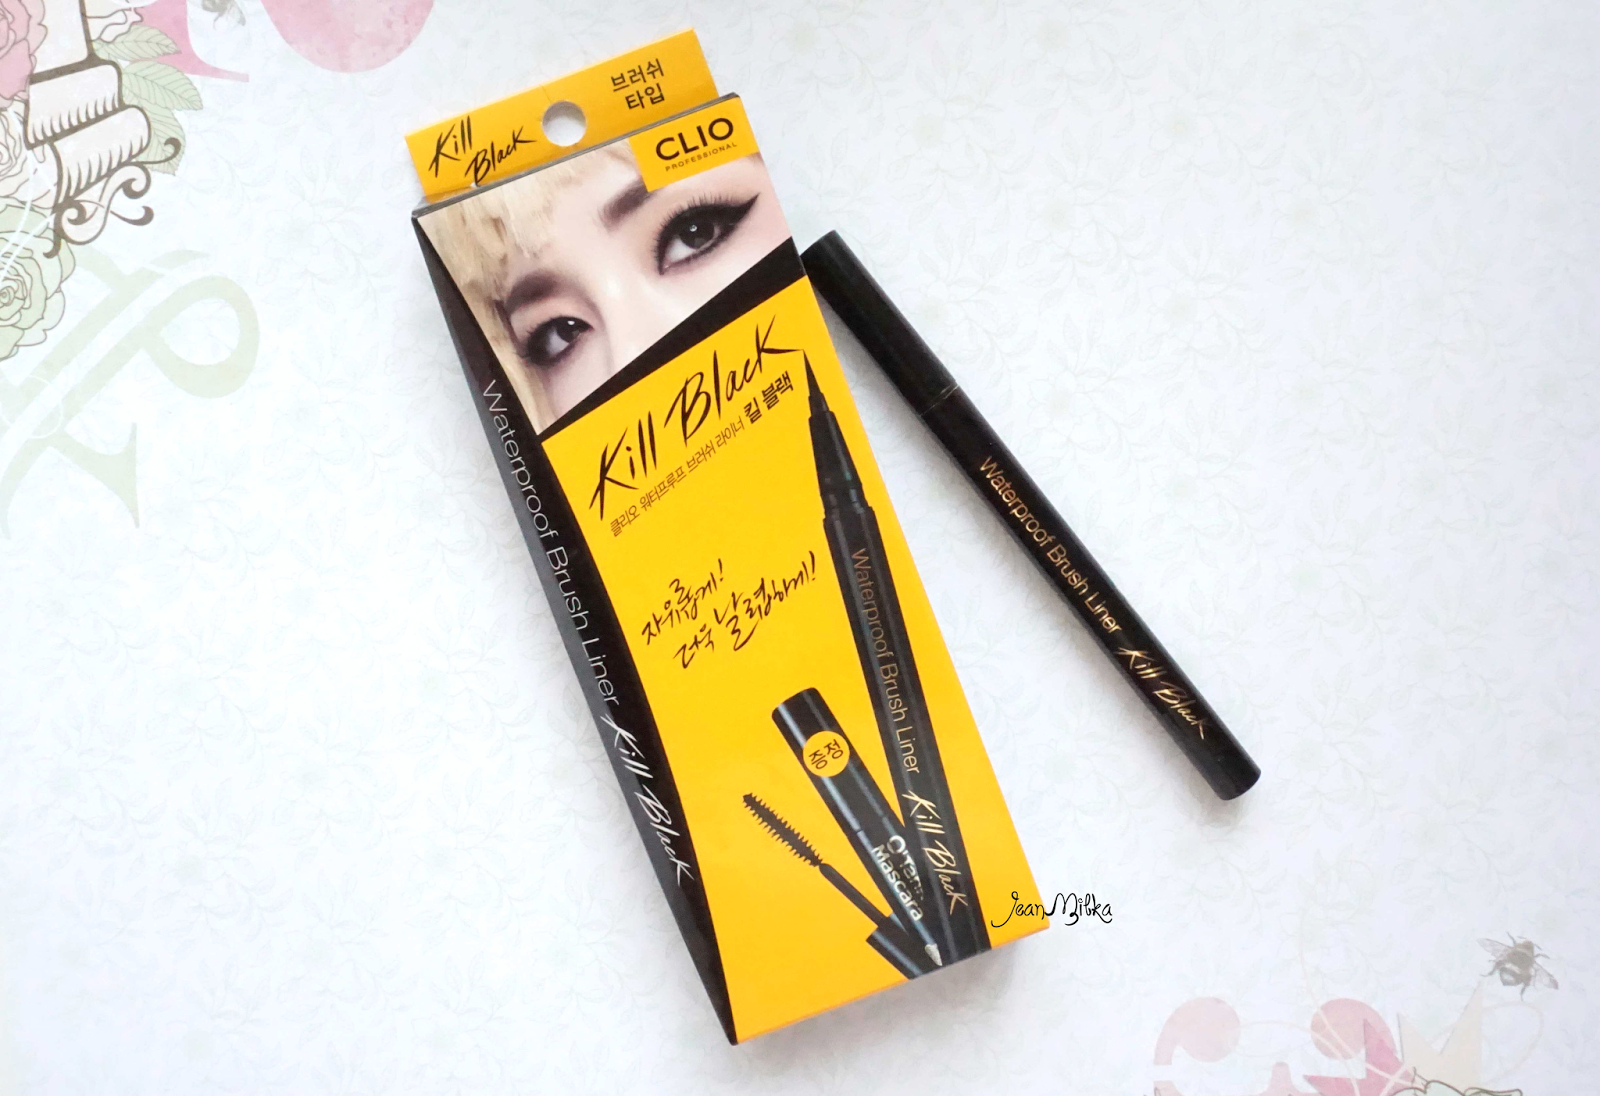 Clio, kill black, liquid, eyeliner, jeanmilka, product review